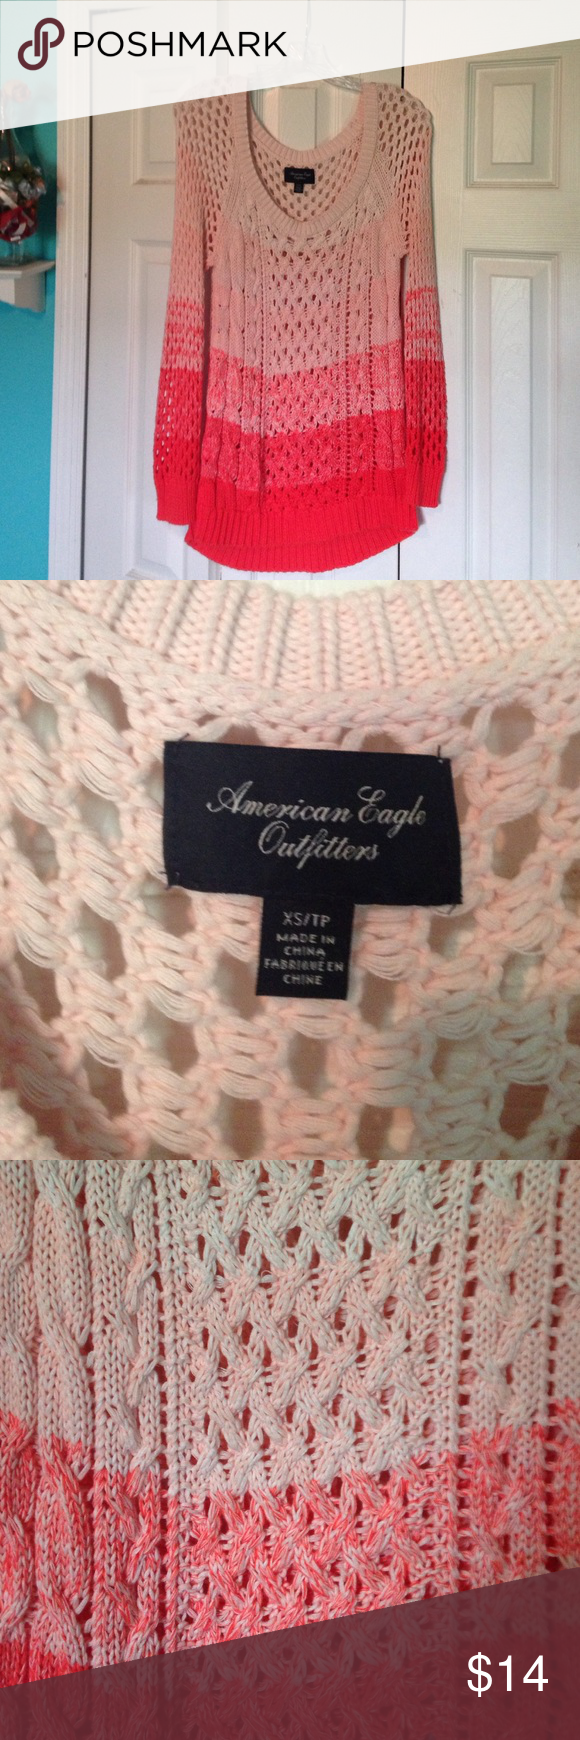 American Eagle This is an American Eagle ombré sweater in an xs that was light worn and in excellent condition no stains or fading. No trades other apps or PayPal I do take offers and bundle my discount is 2/20% and 3/30% just message me to change American Eagle Outfitters Sweaters